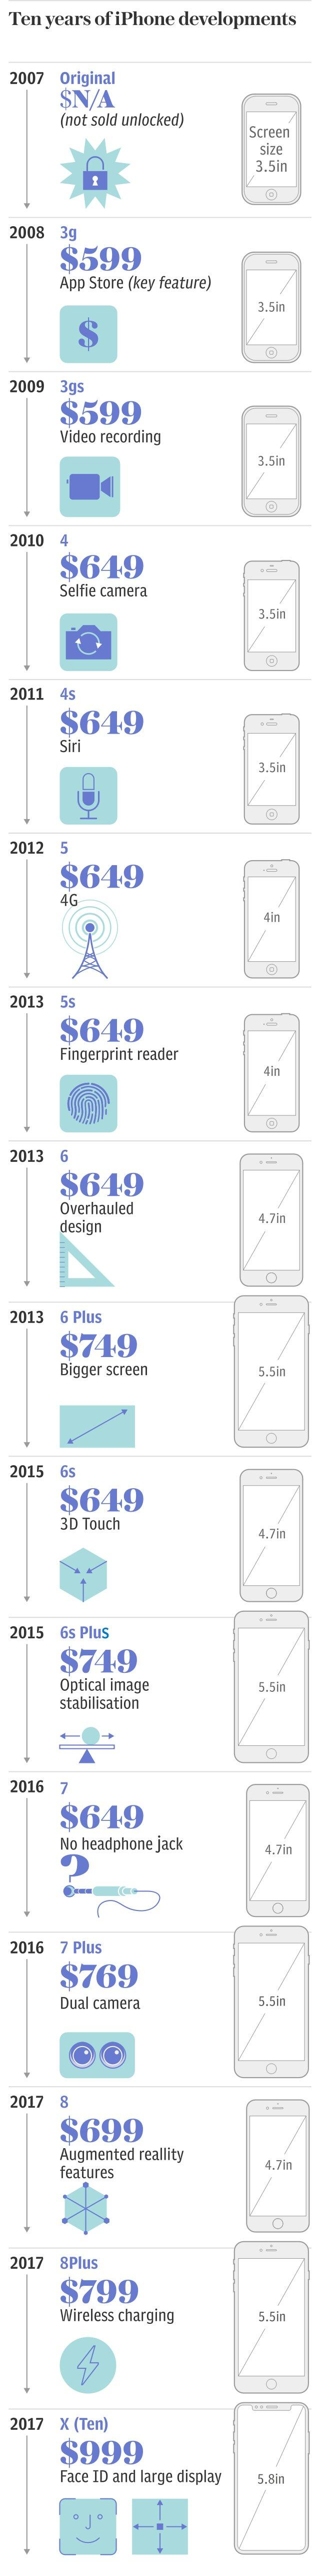 Ten years of iPhone development